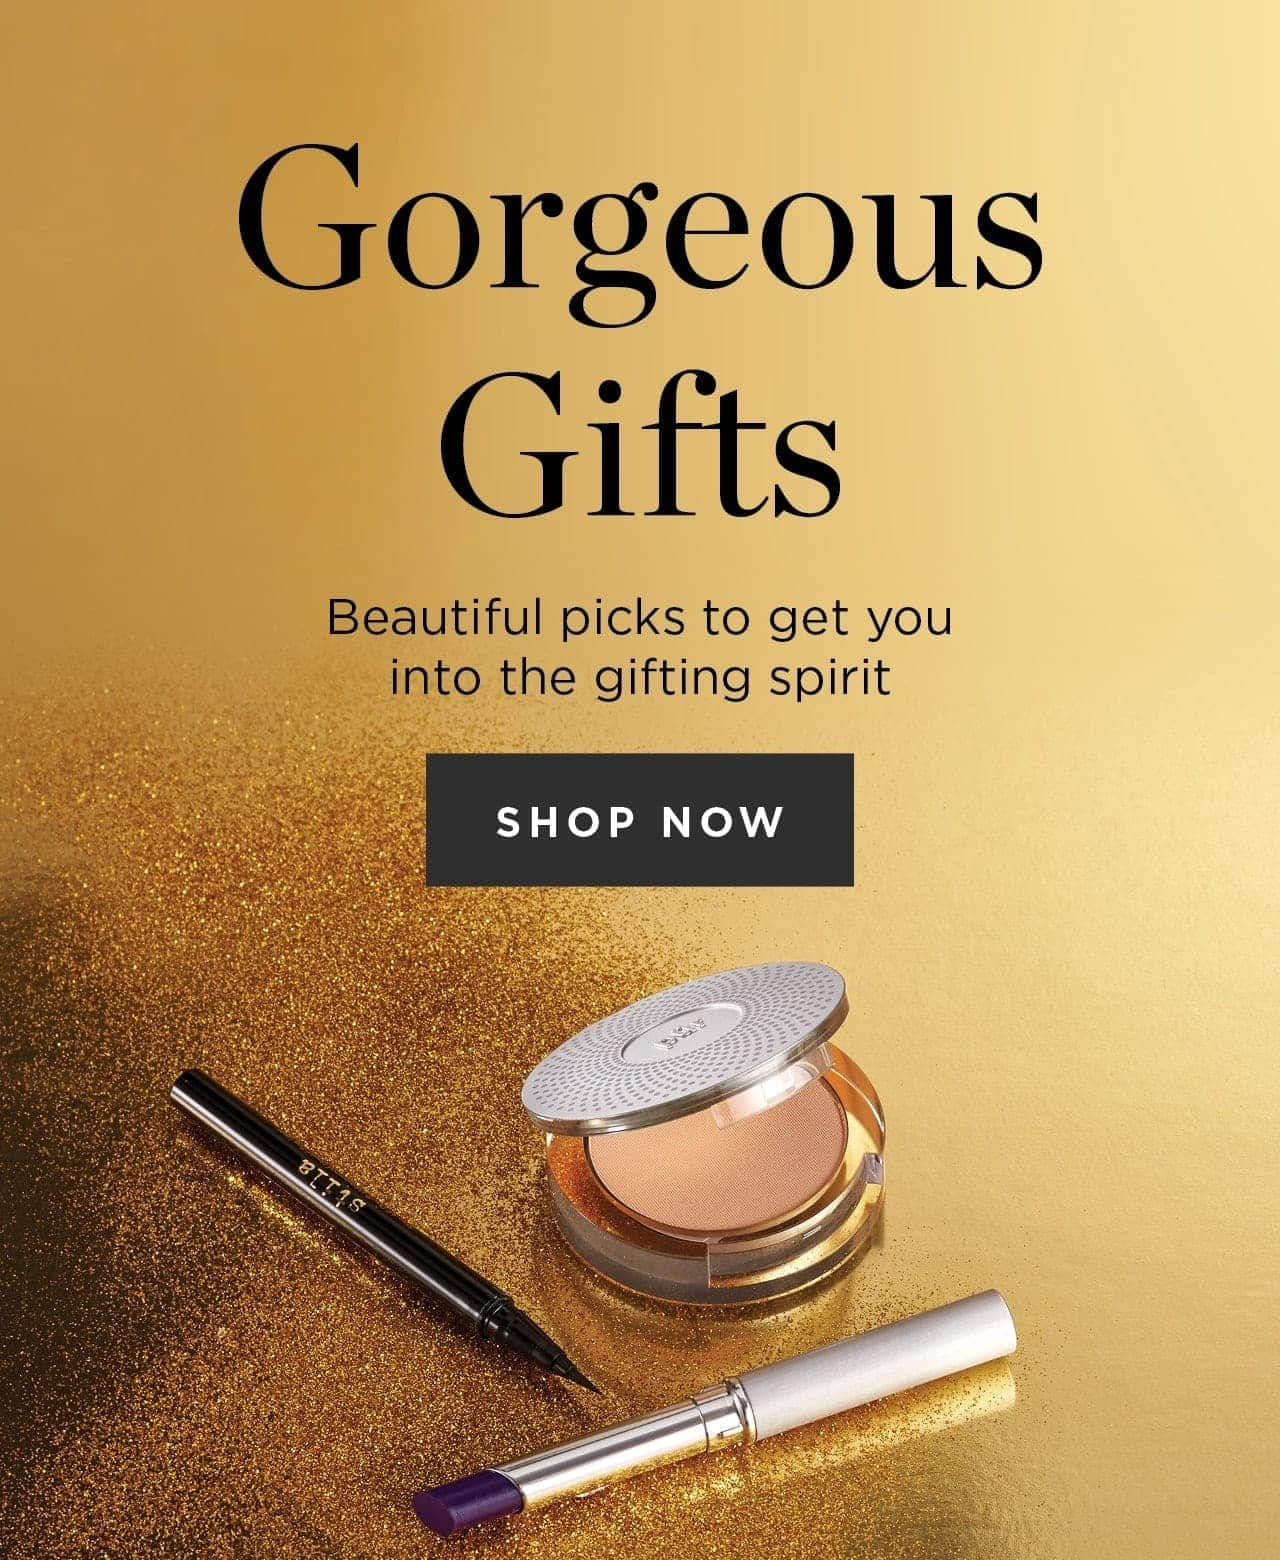 Gorgeous gifts. Beautiful picks to get you into the gifting spirit